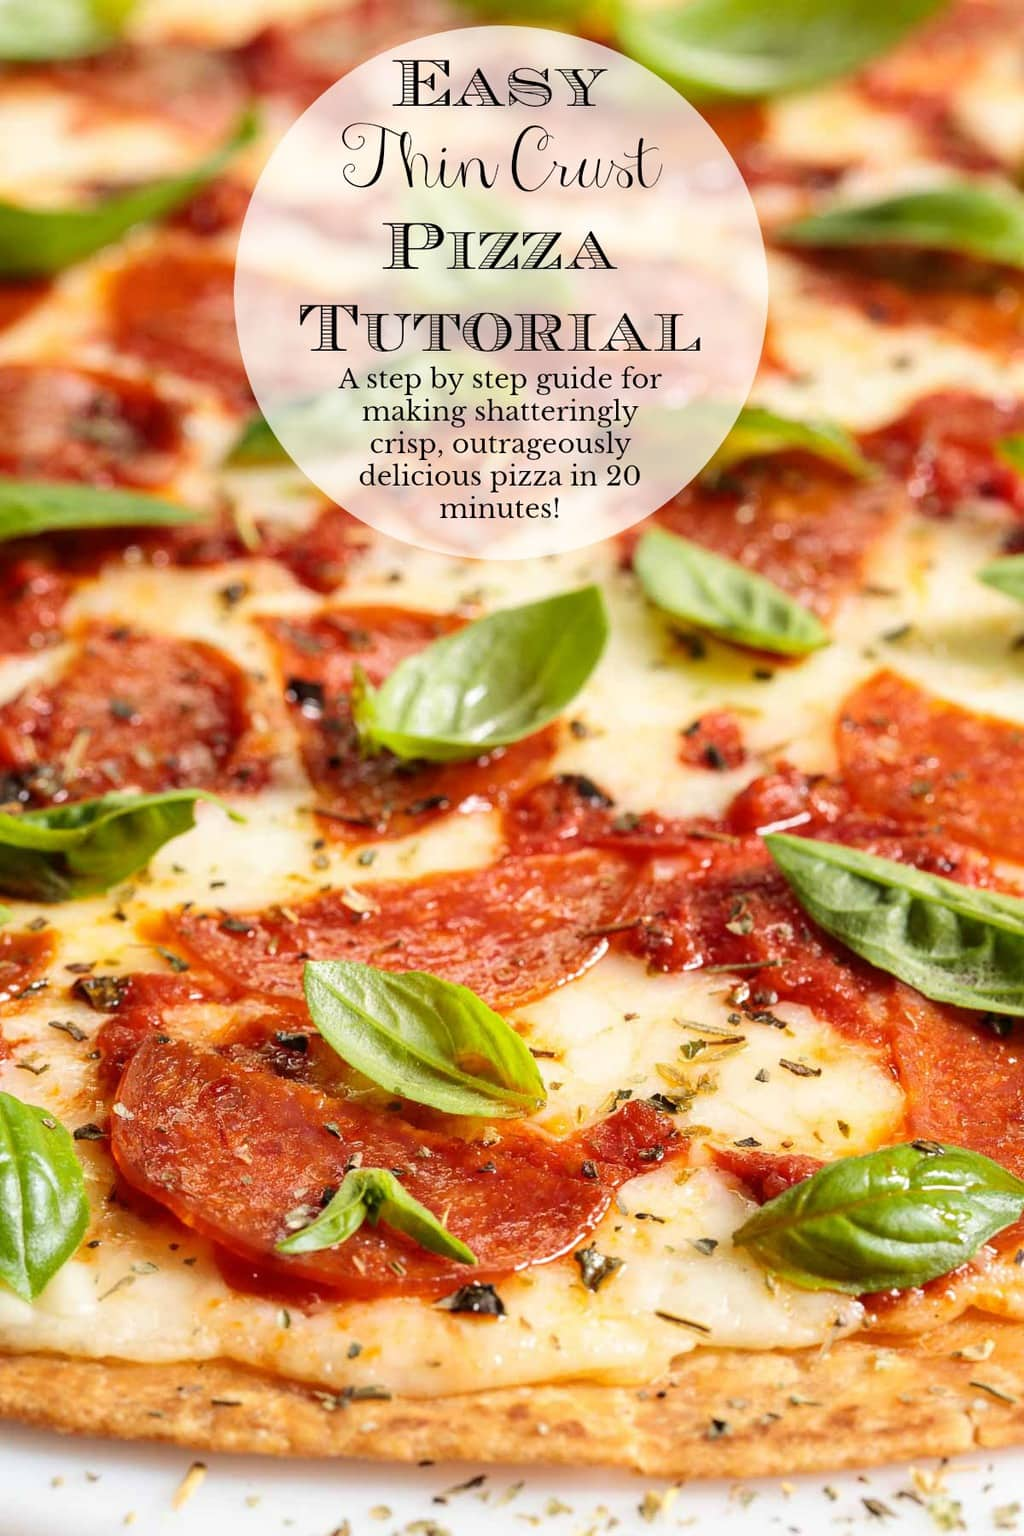 Everyone needs a super easy and universally-loved dinner idea up their sleeve. This Easy Thin Crust Pizza Tutorial will show you how to make shatteringly crisp, outrageously delicious pizza in 20 minutes! #easypizzacrust, #easythincrustpizza, #howtomakethincrustpizza